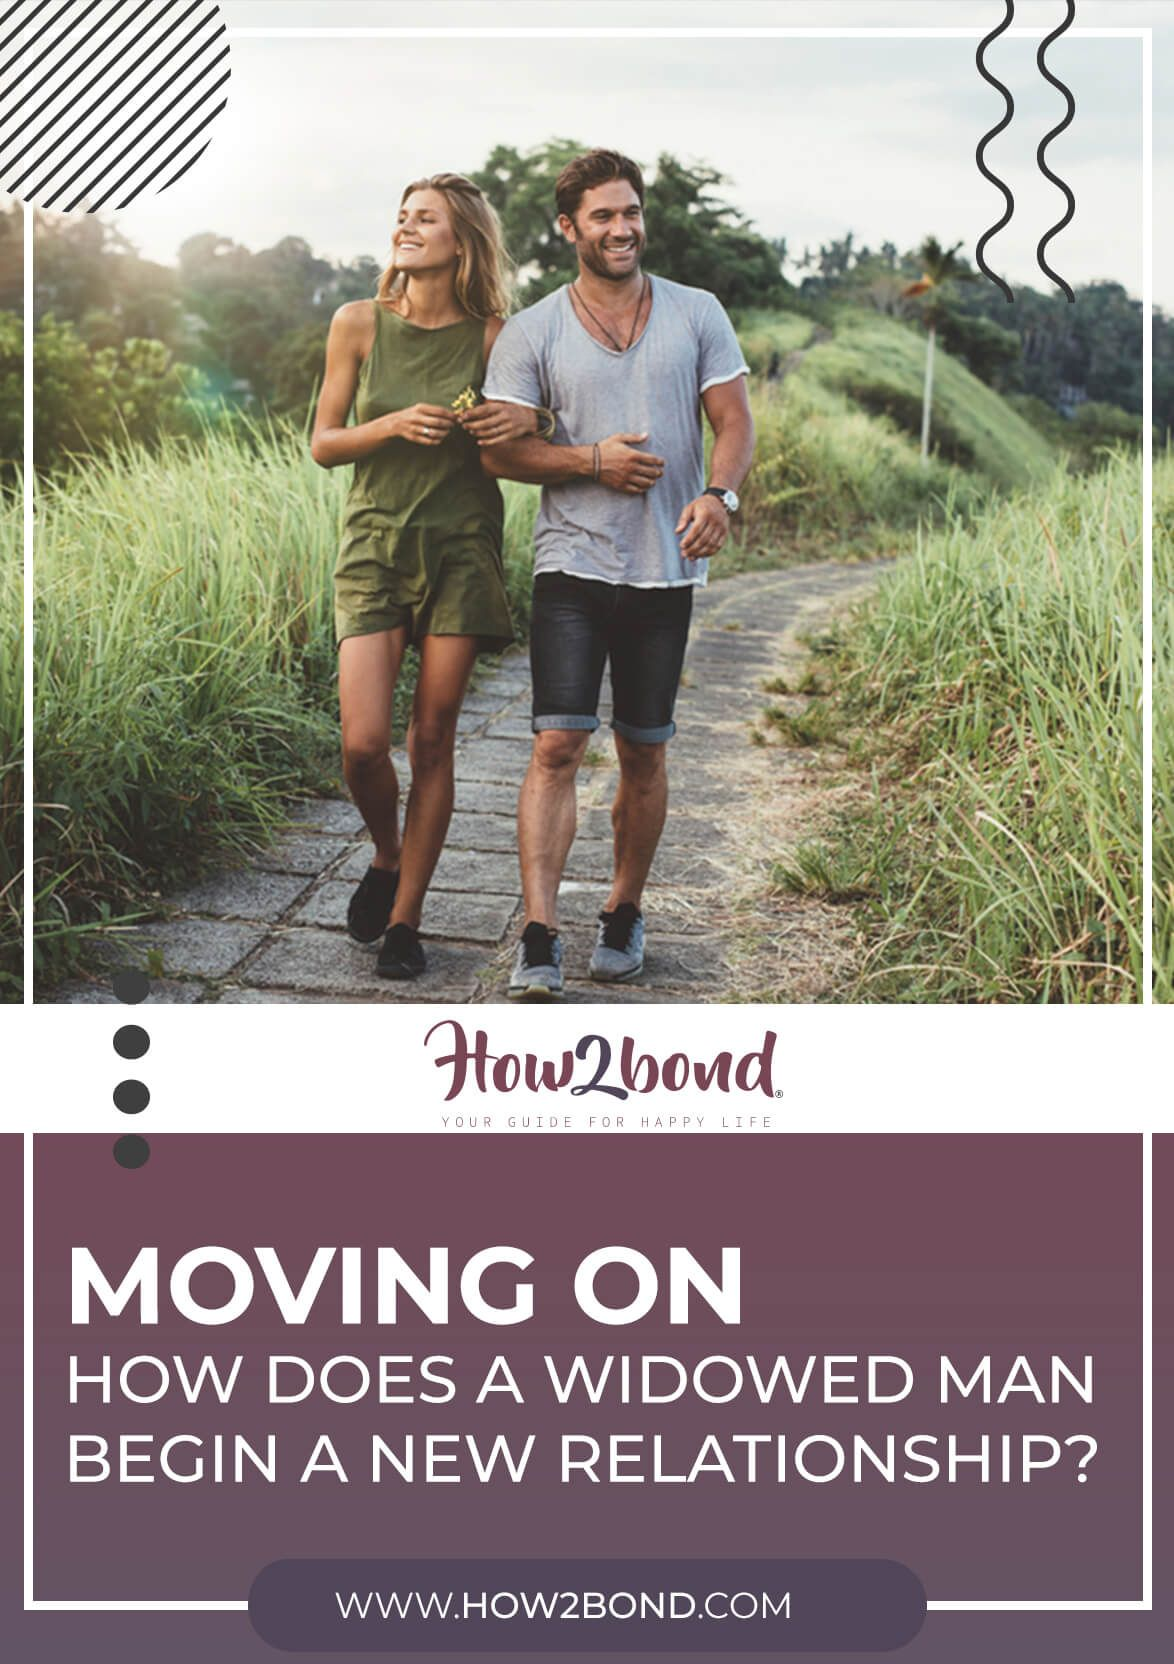 Moving on: How Does a Widowed Man Begin a New Relationship